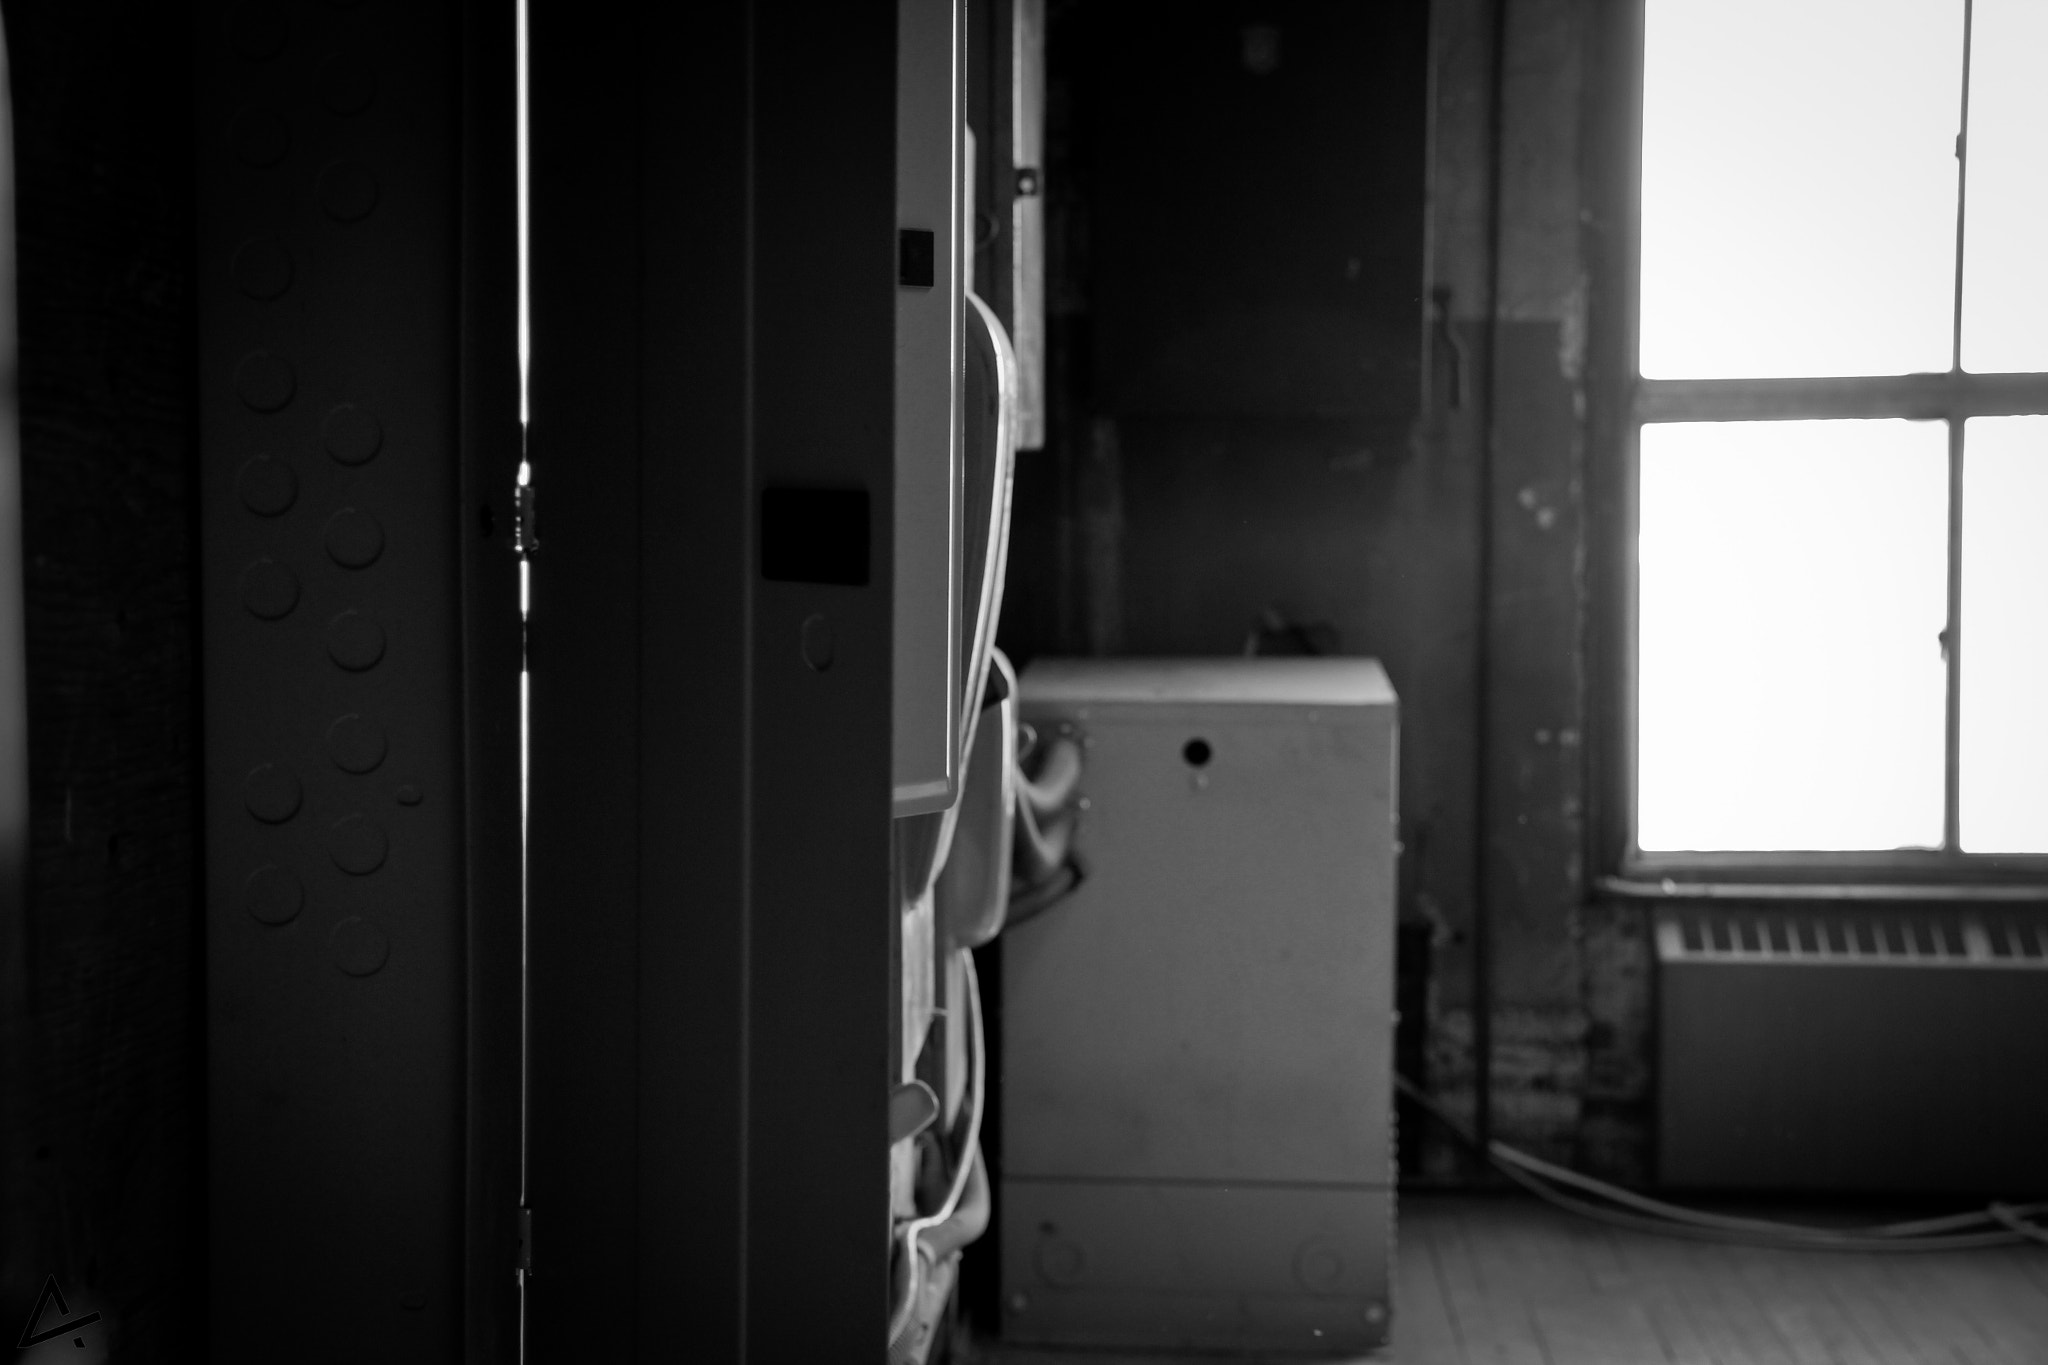 Photograph Electrical room by Alexandre Masy on 500px